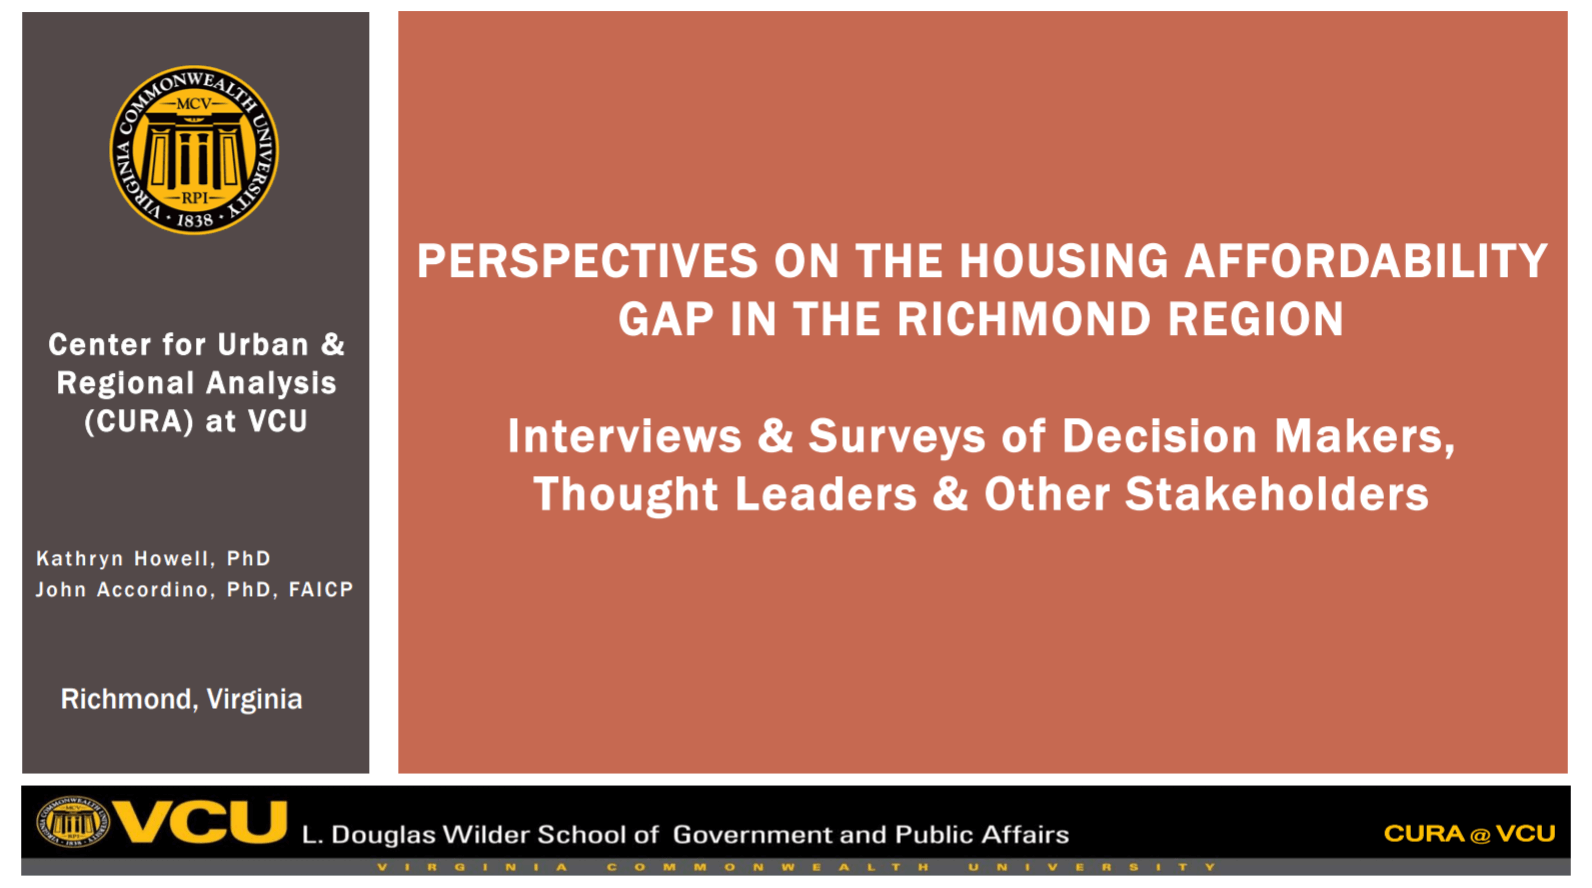 VCU Presentation: Perspectives on the Housing Affordability Gap in the Richmond Region